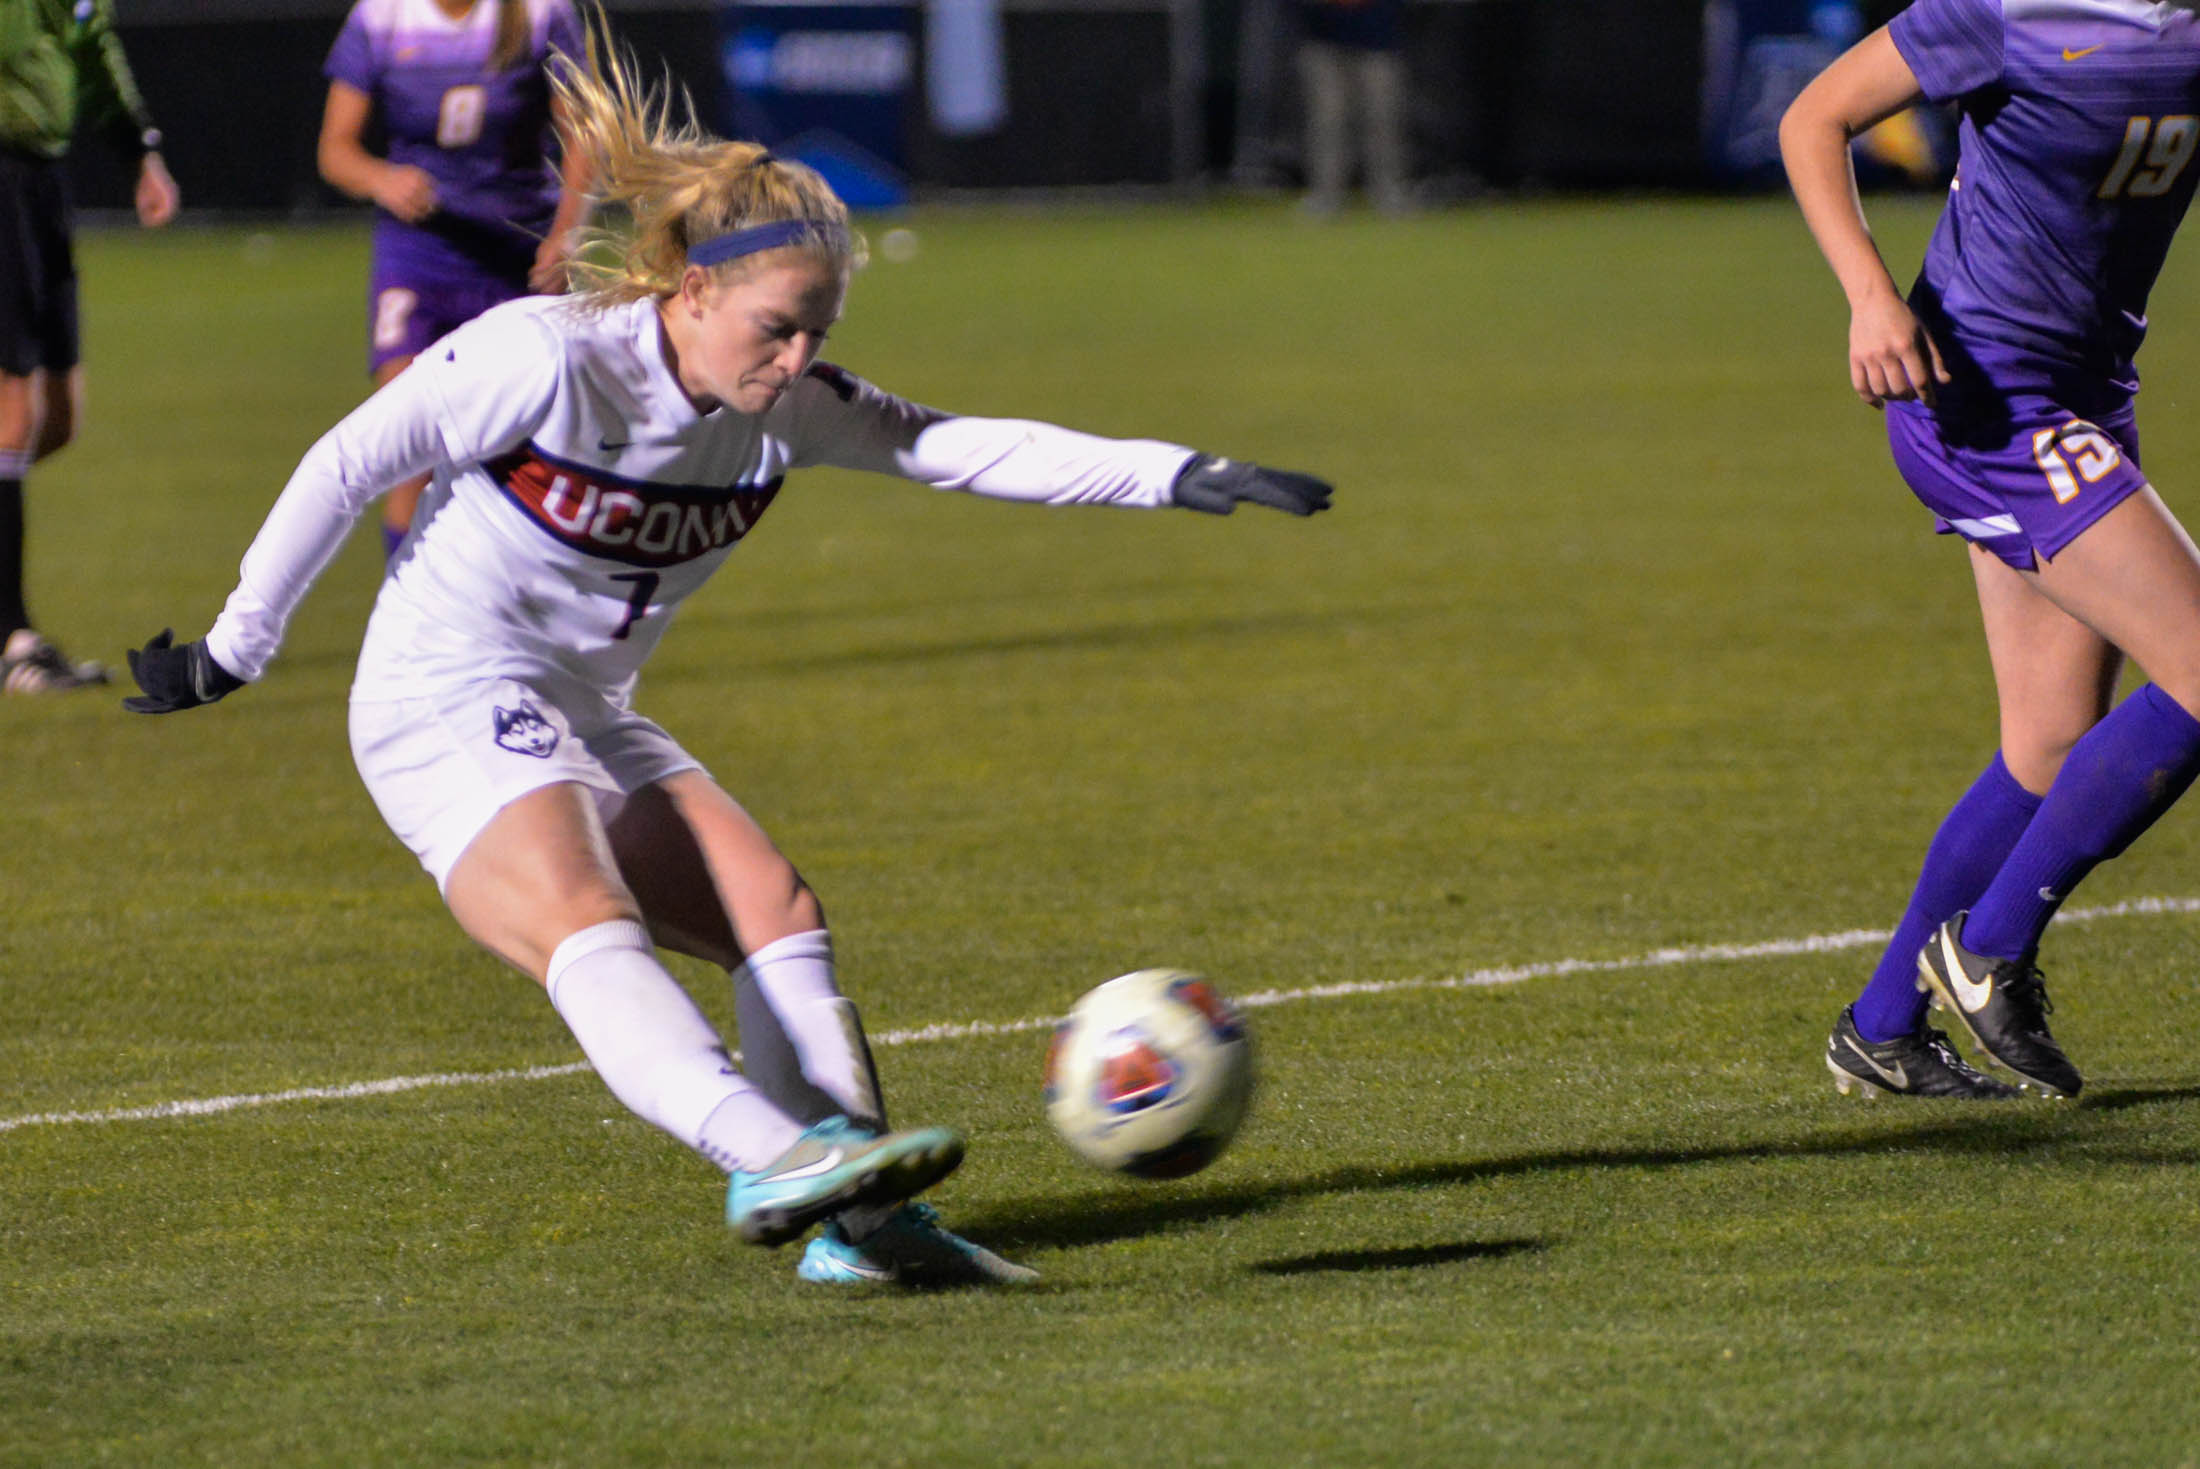 UConn midfield Maddie Damm (7) fires off a goal during the Huskies 4-2 victory over the UAlbany Great Danes during the first round of the NCAA tournament on Saturday, Nov. 12, 2016. This is Damm's second goal of the season and the Huskies fourth of the game.. (Amar Batra/The Daily Campus)